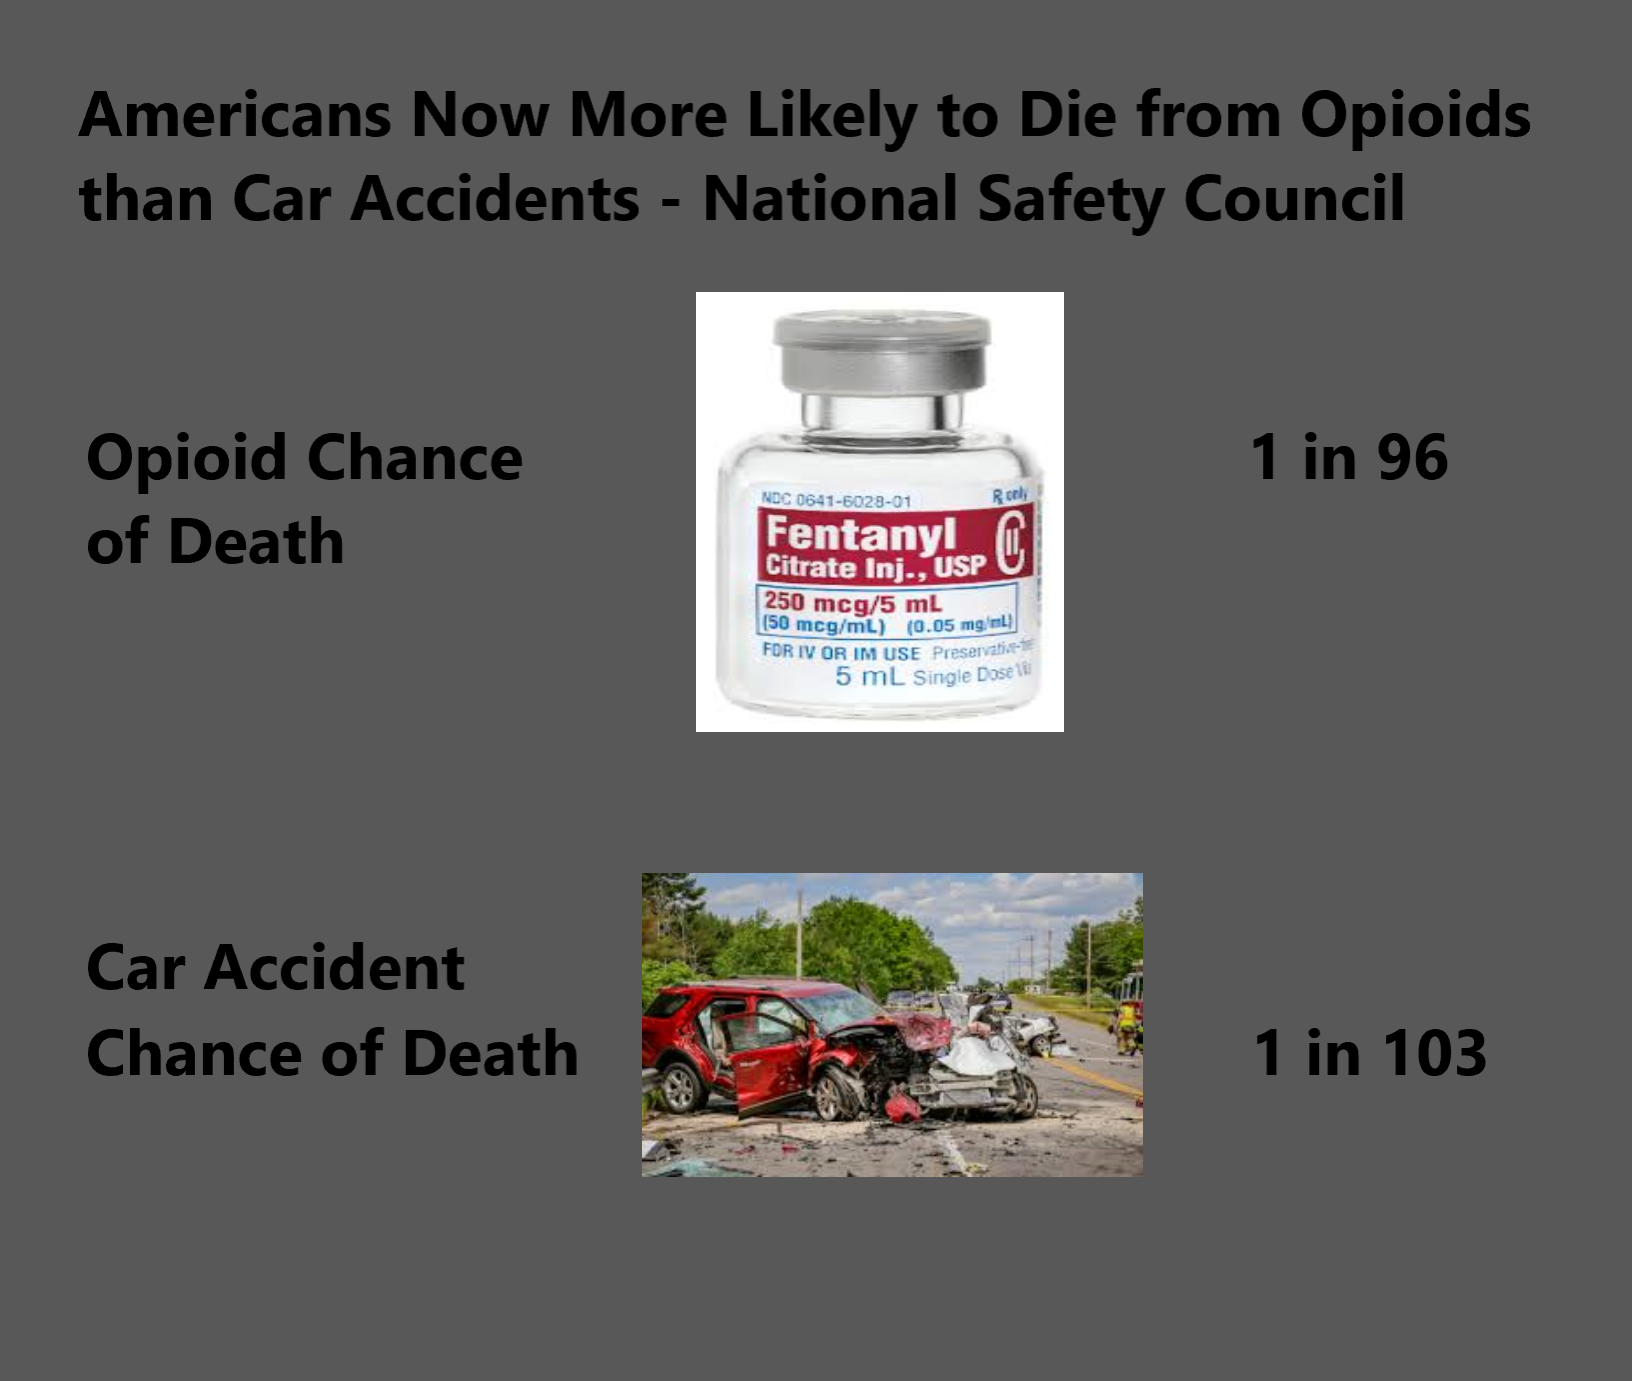 AMERICANS NOW MORE LIKELY TO DIE FROM OPIOIDS THAN CAR ACCIDENTS